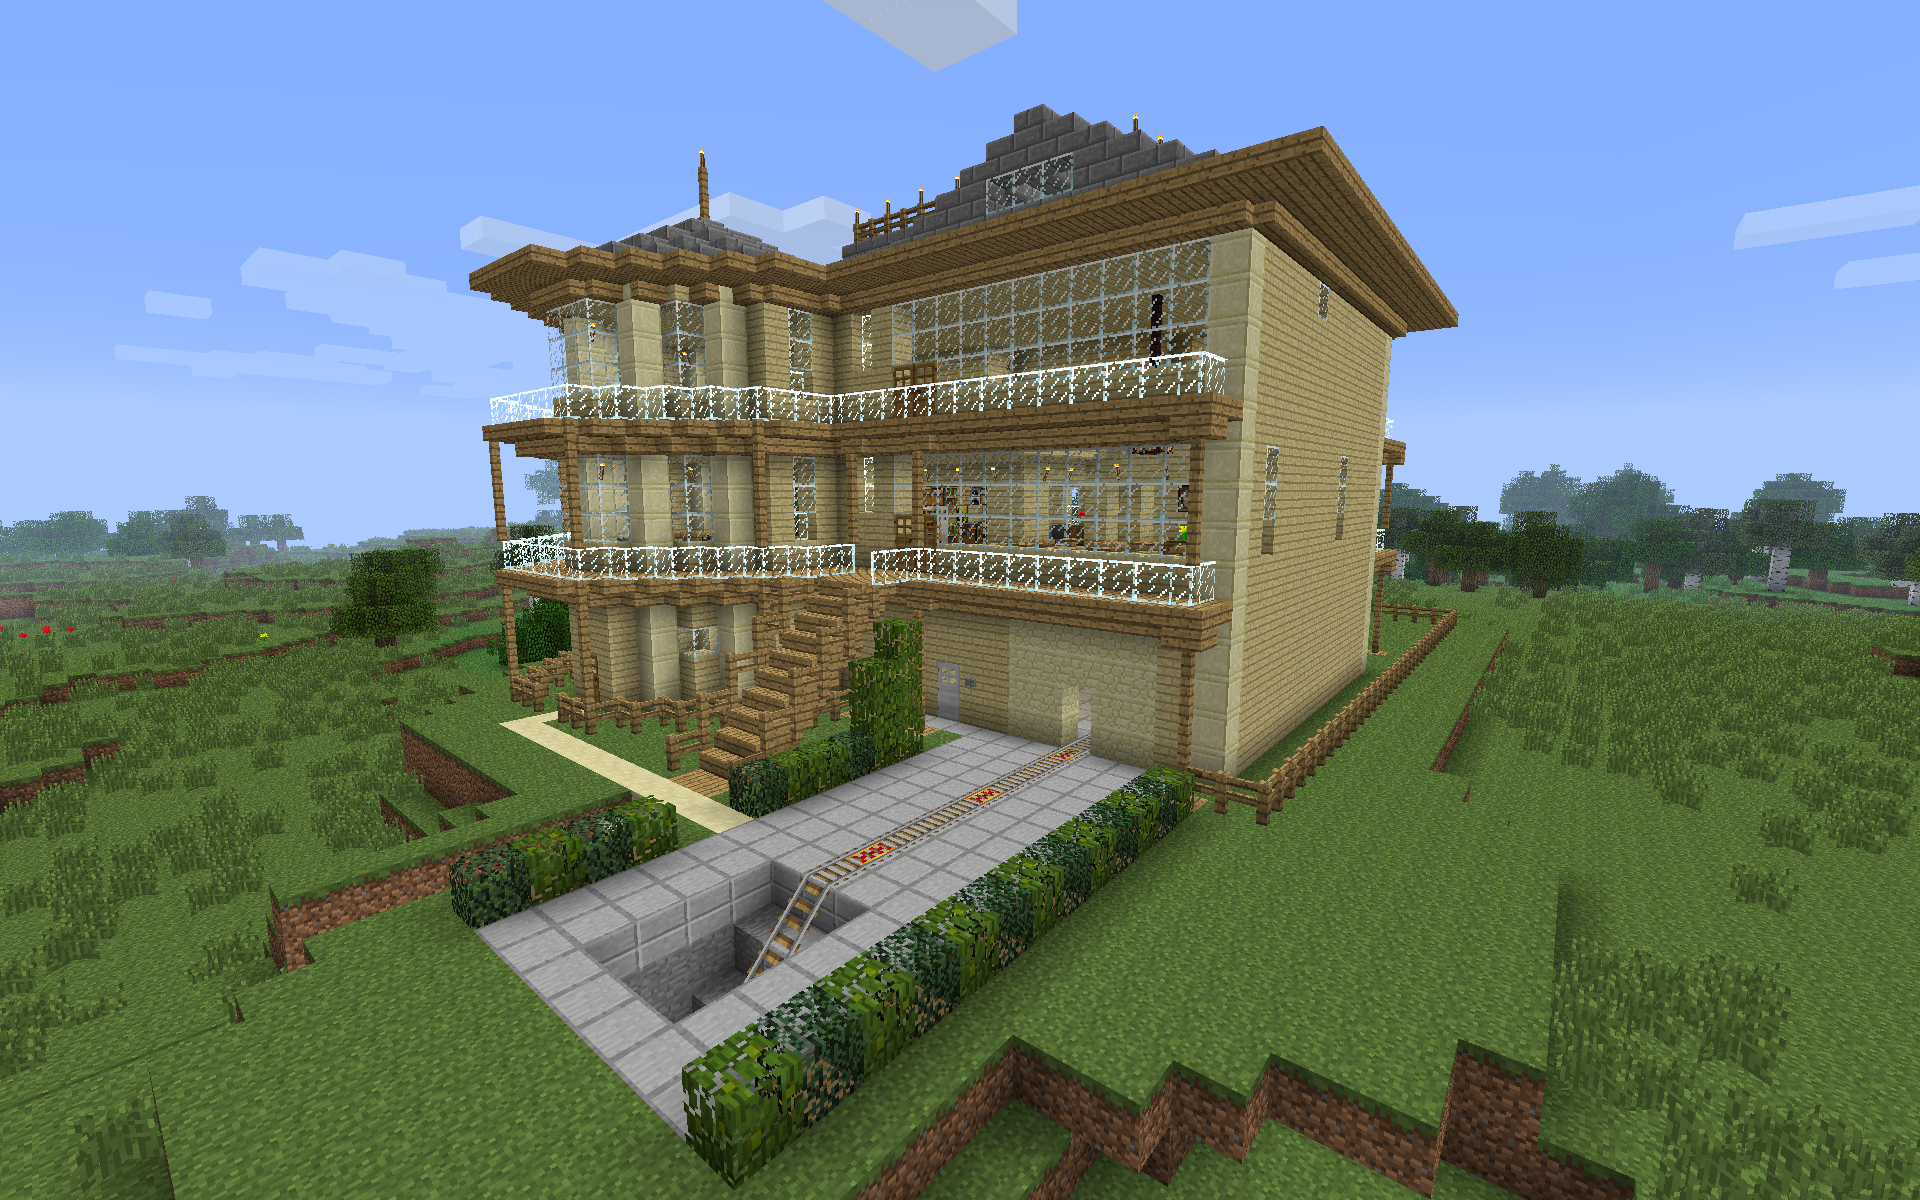 Ideas To Build A House minecraft house ideas xbox 360 | minecraft building ideas: modern